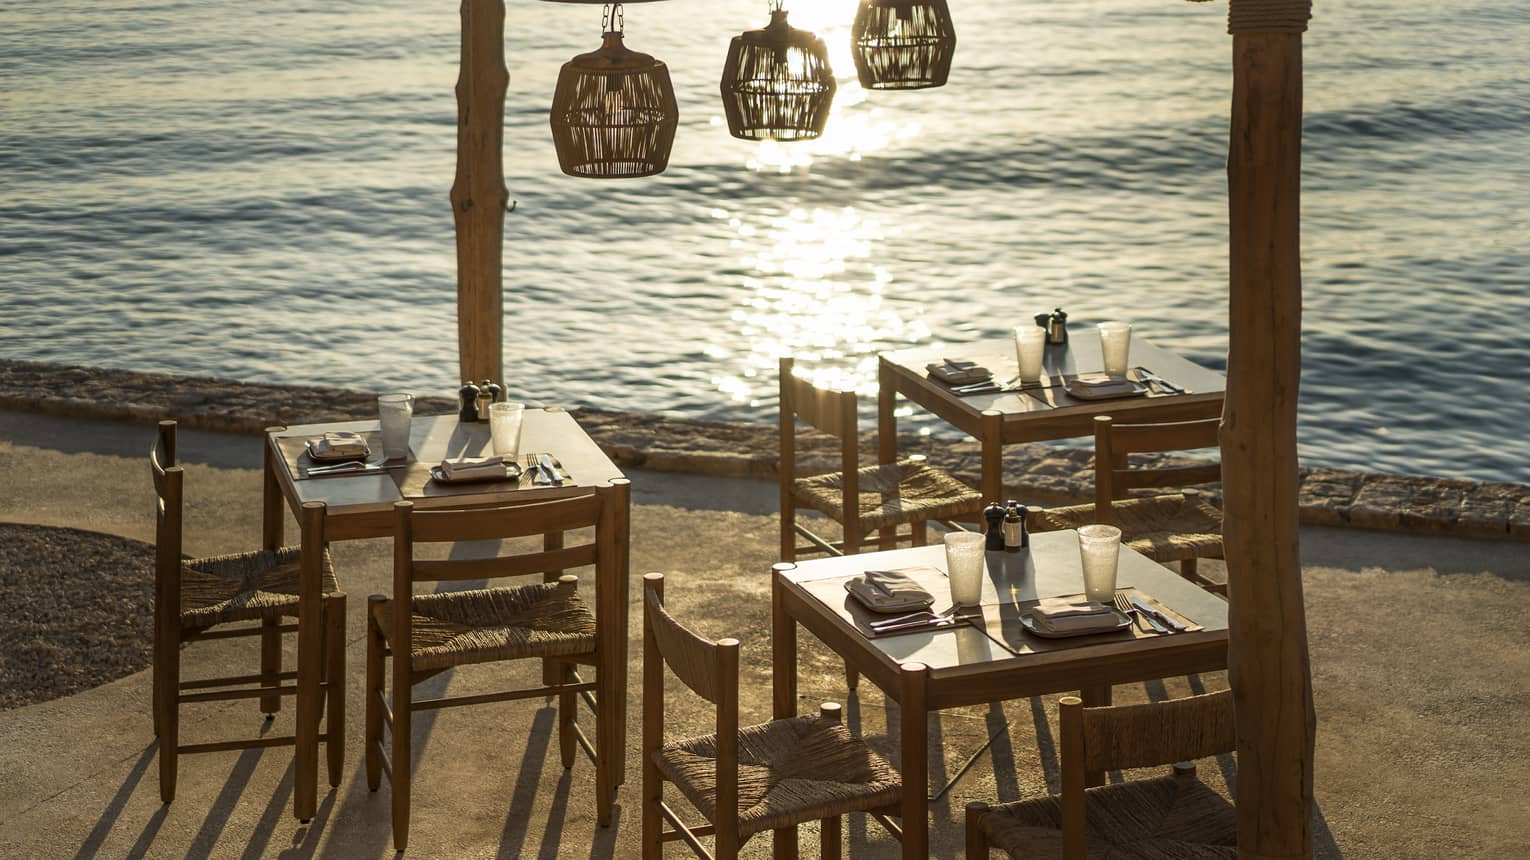 Outdoor taverna next to ocean with three wooden tables and chairs, three wooden lamps